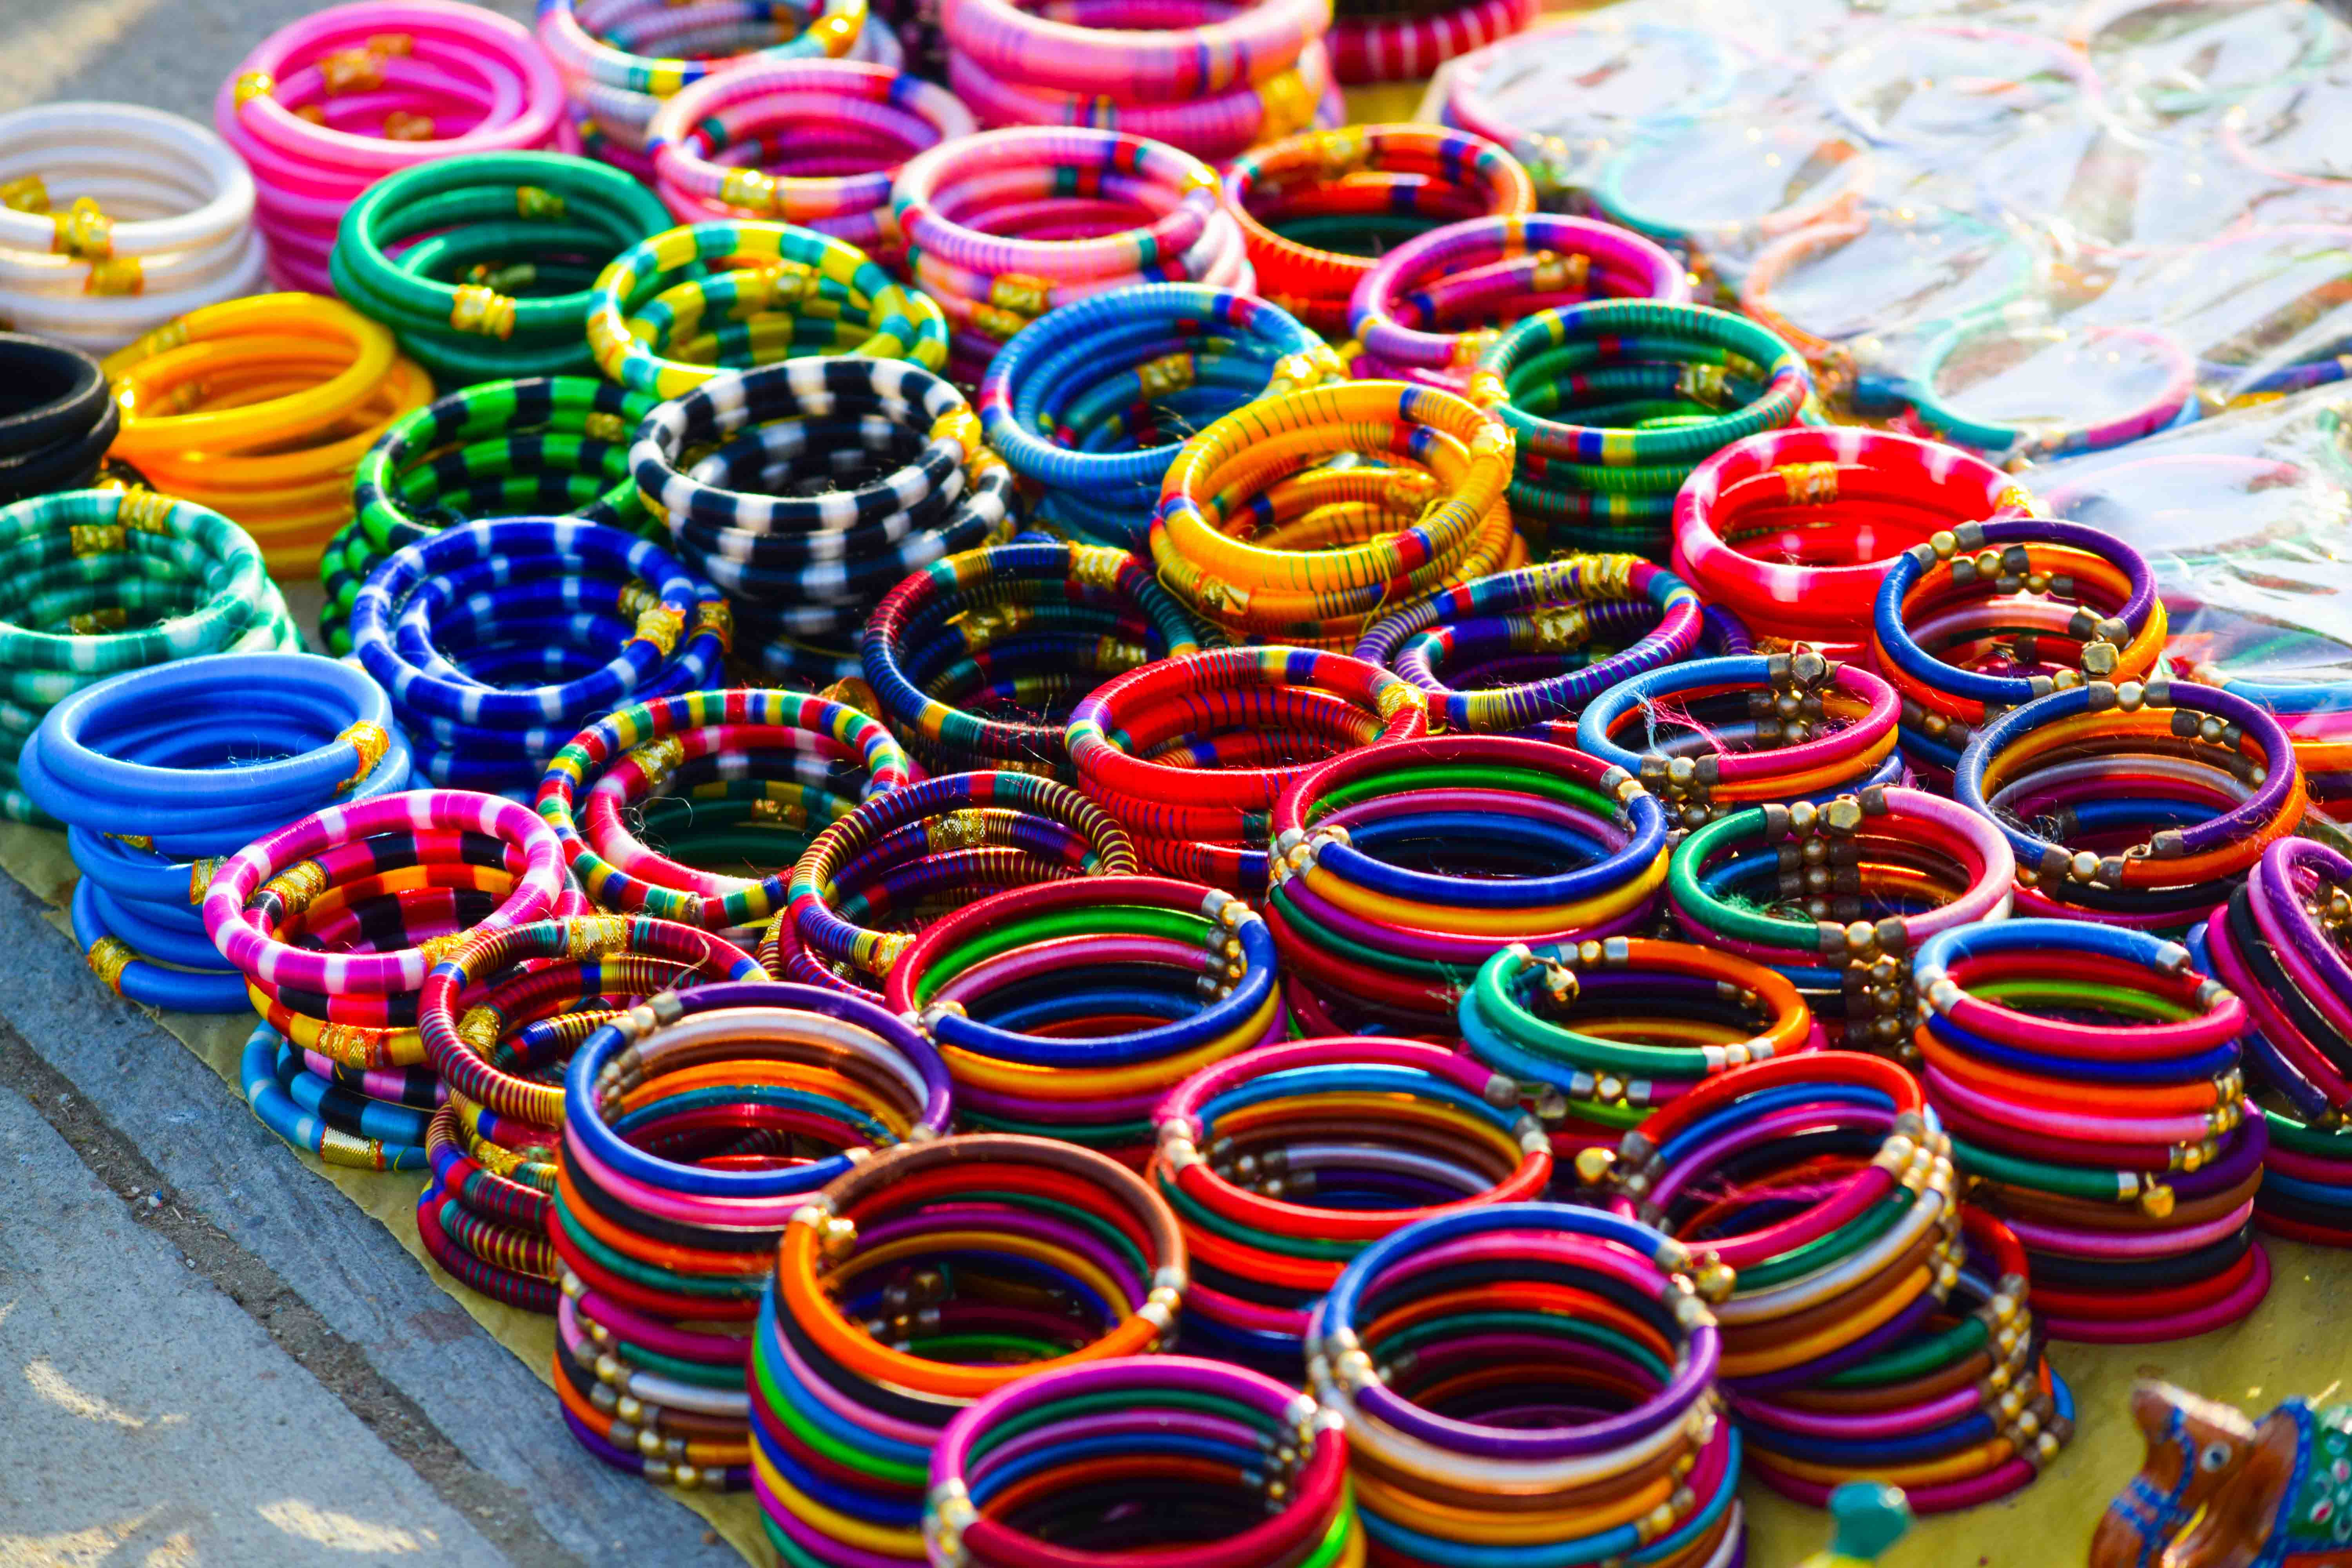 Rajasthani Lac Jewellery A Complete Guide For Buying Souvenirs In Rajasthan